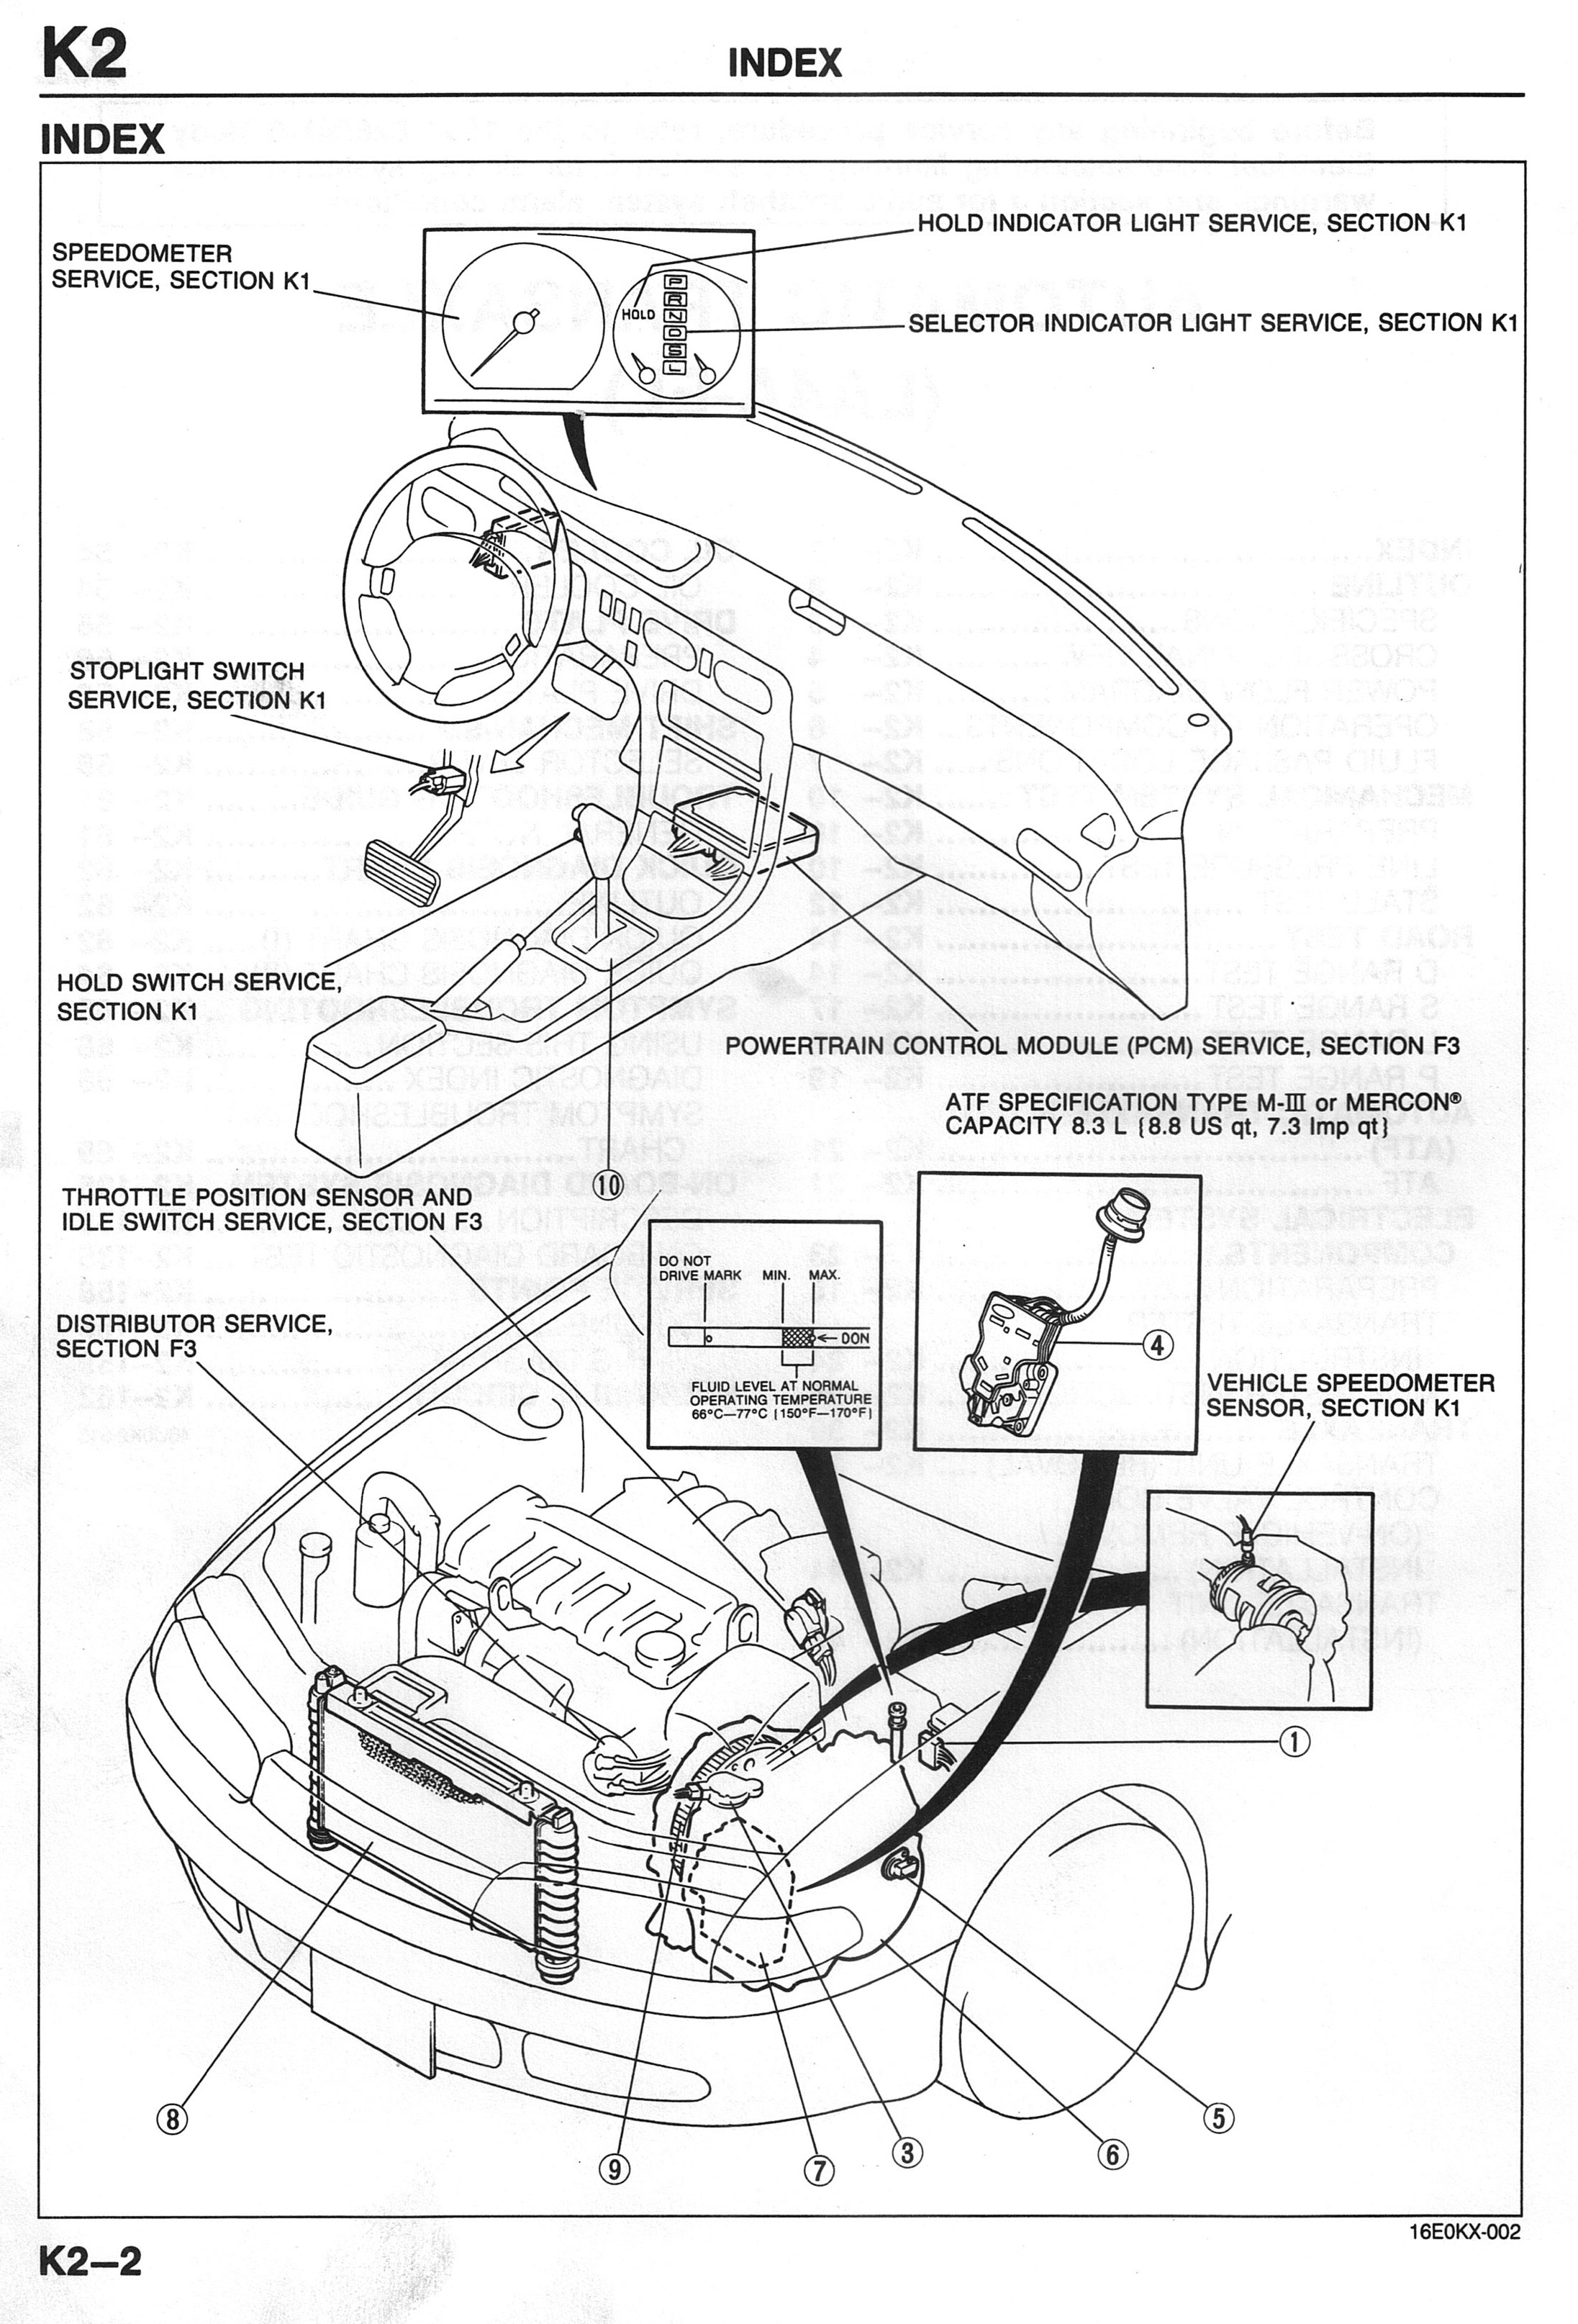 1999 mazda 626 v6 engine diagram